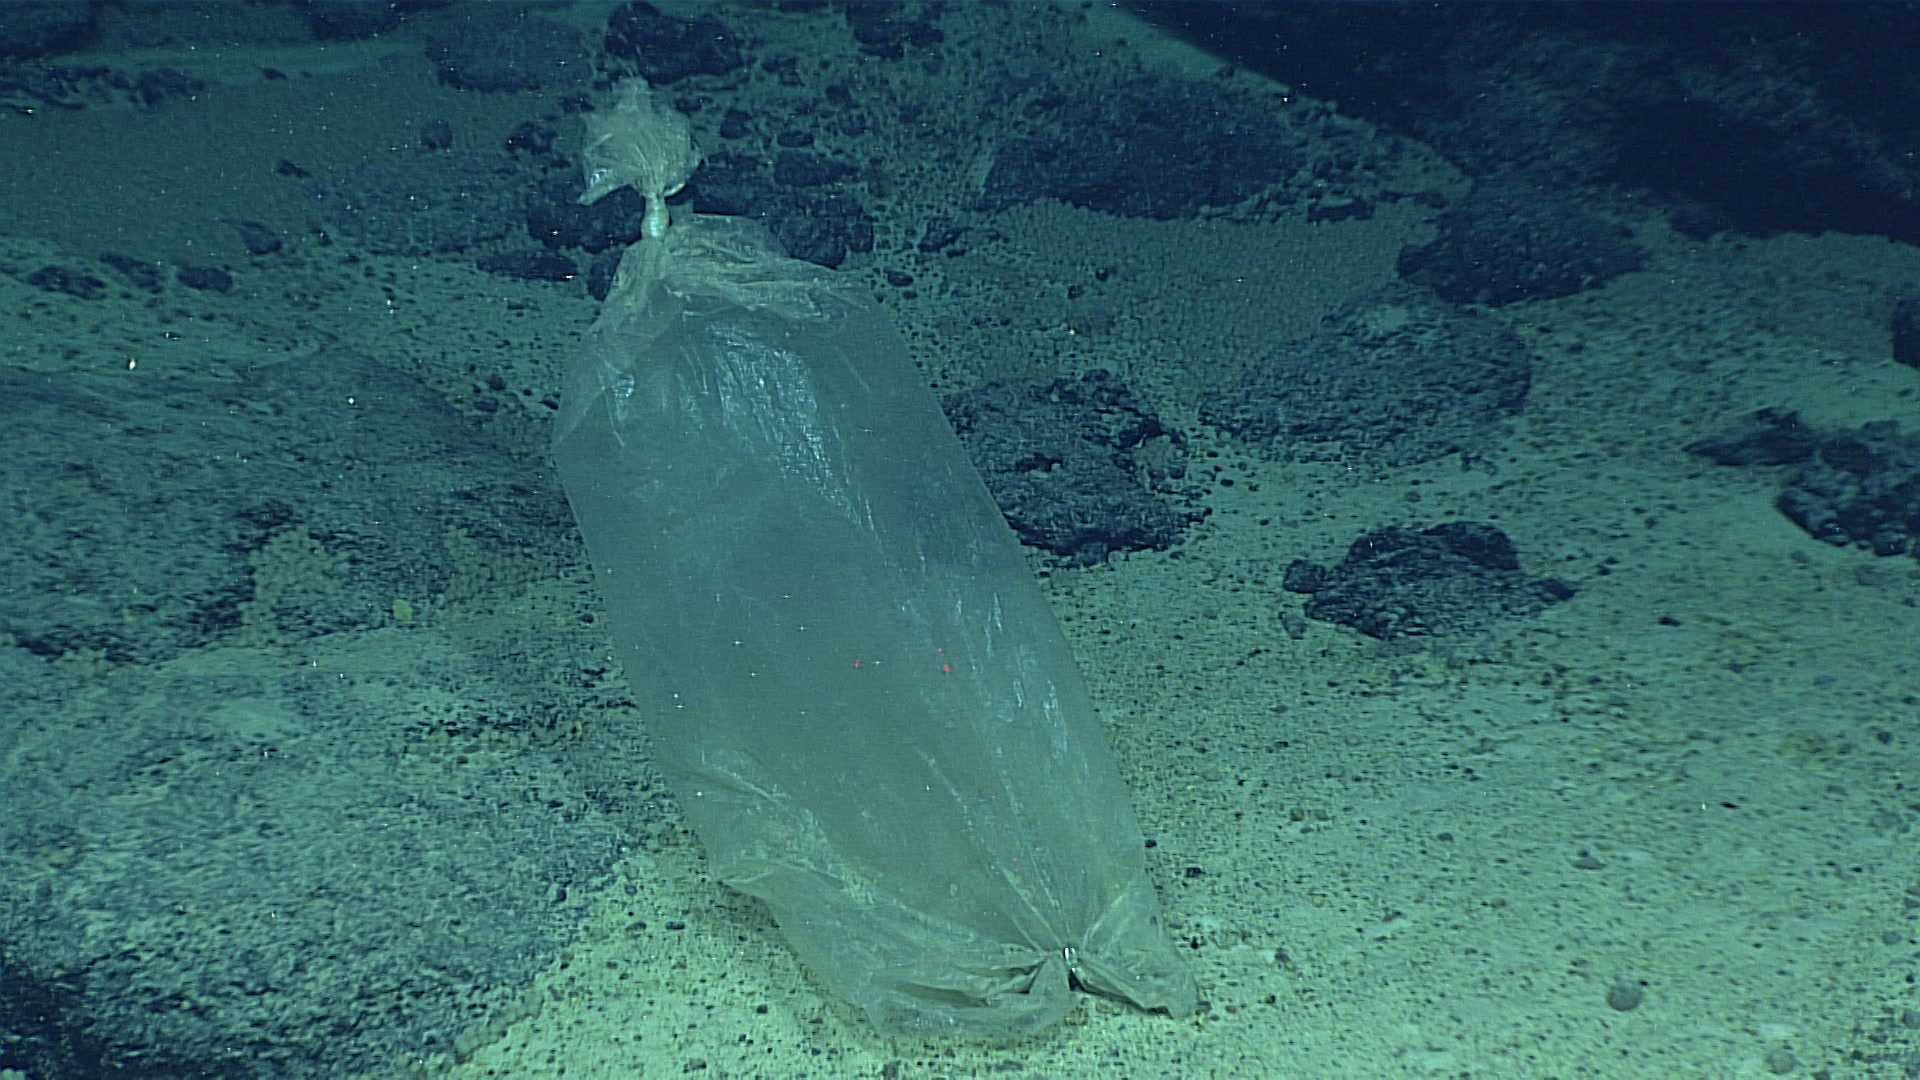 This April 22, 2016 image made available by NOAA shows a plastic ice bag found at the Enigma Seamount, during a deepwater exploration of the Marianas Trench Marine National Monument area in the Pacific Ocean near Guam and Saipan. Dives in the expedition ranged from 820 feet to 3.7 miles.